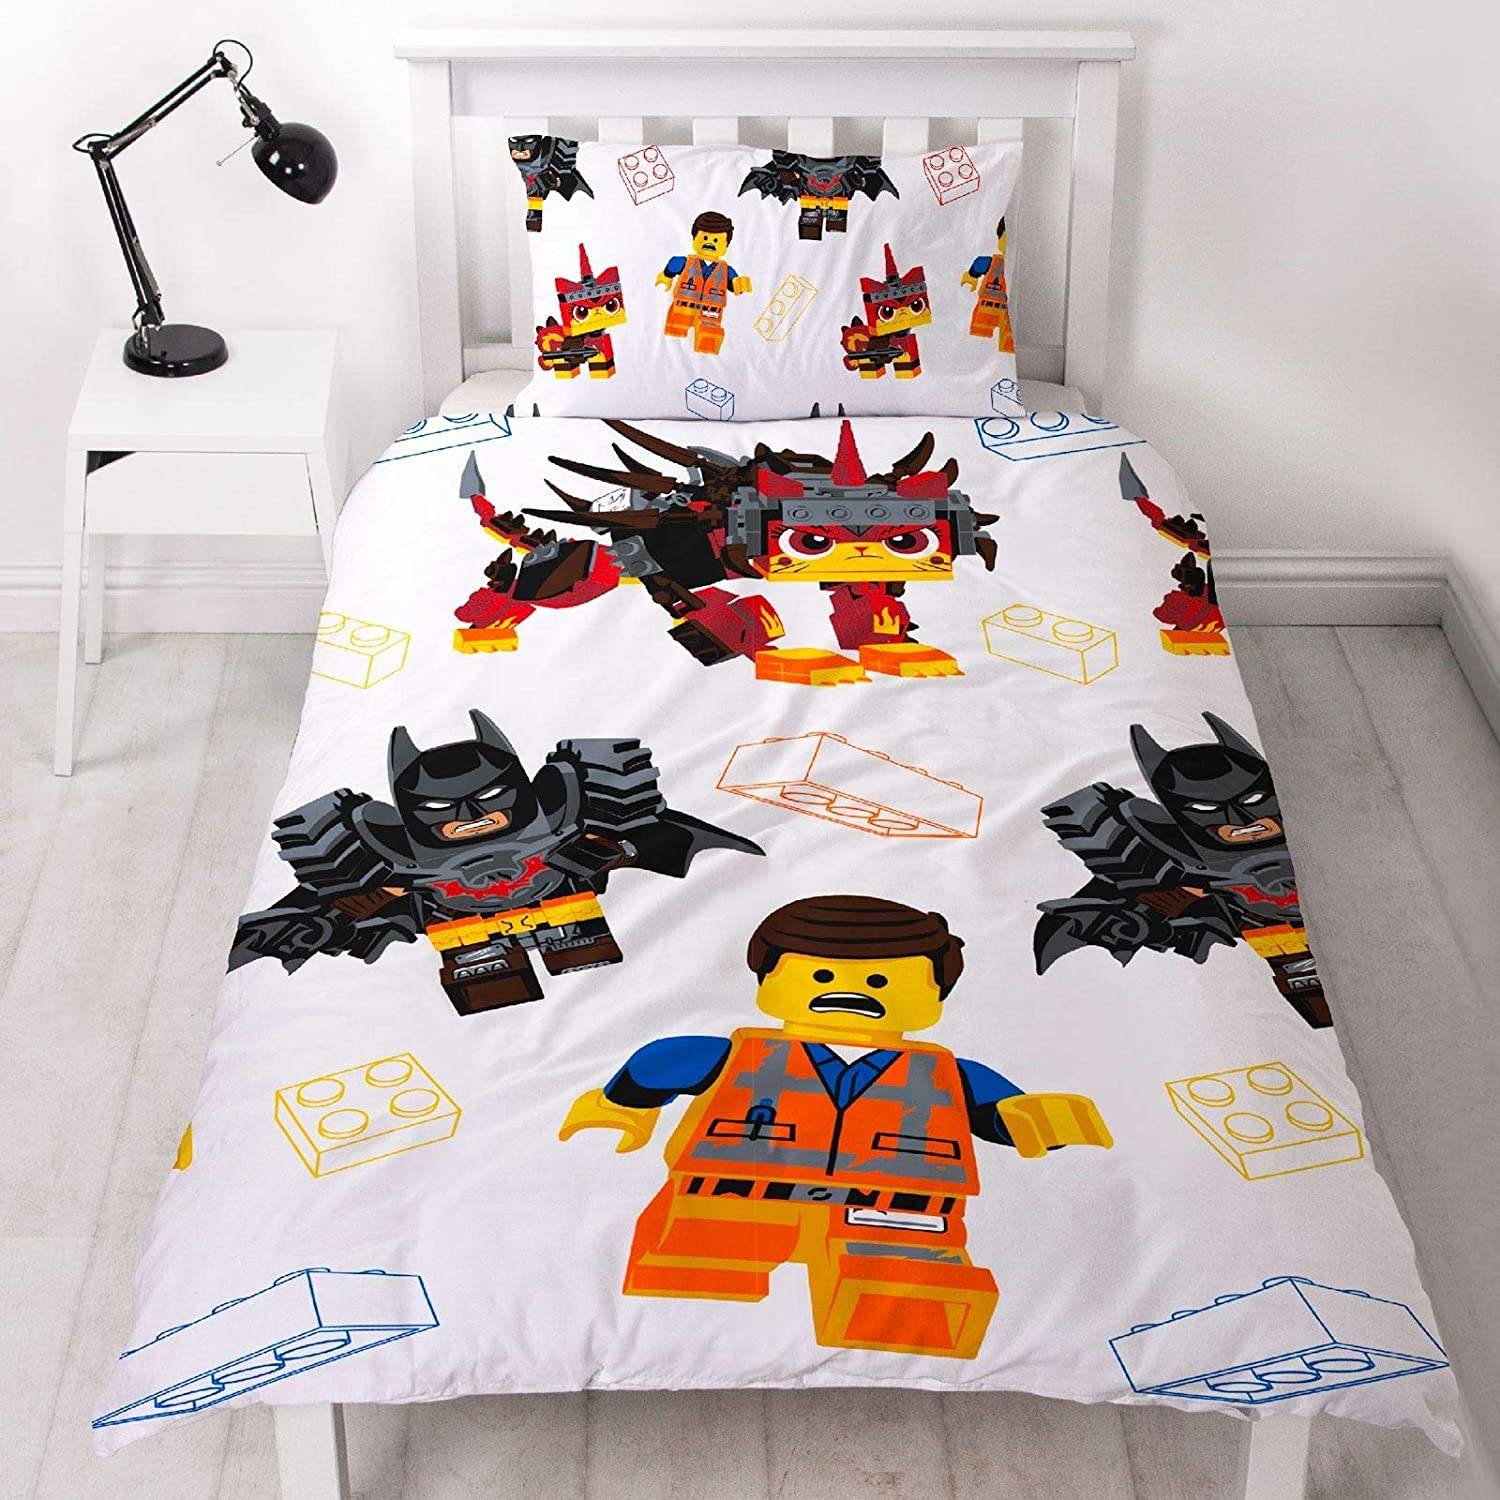 LEGO Movie 2 Awesome UK Single/US Twin Duvet Cover and Pillowcase Set